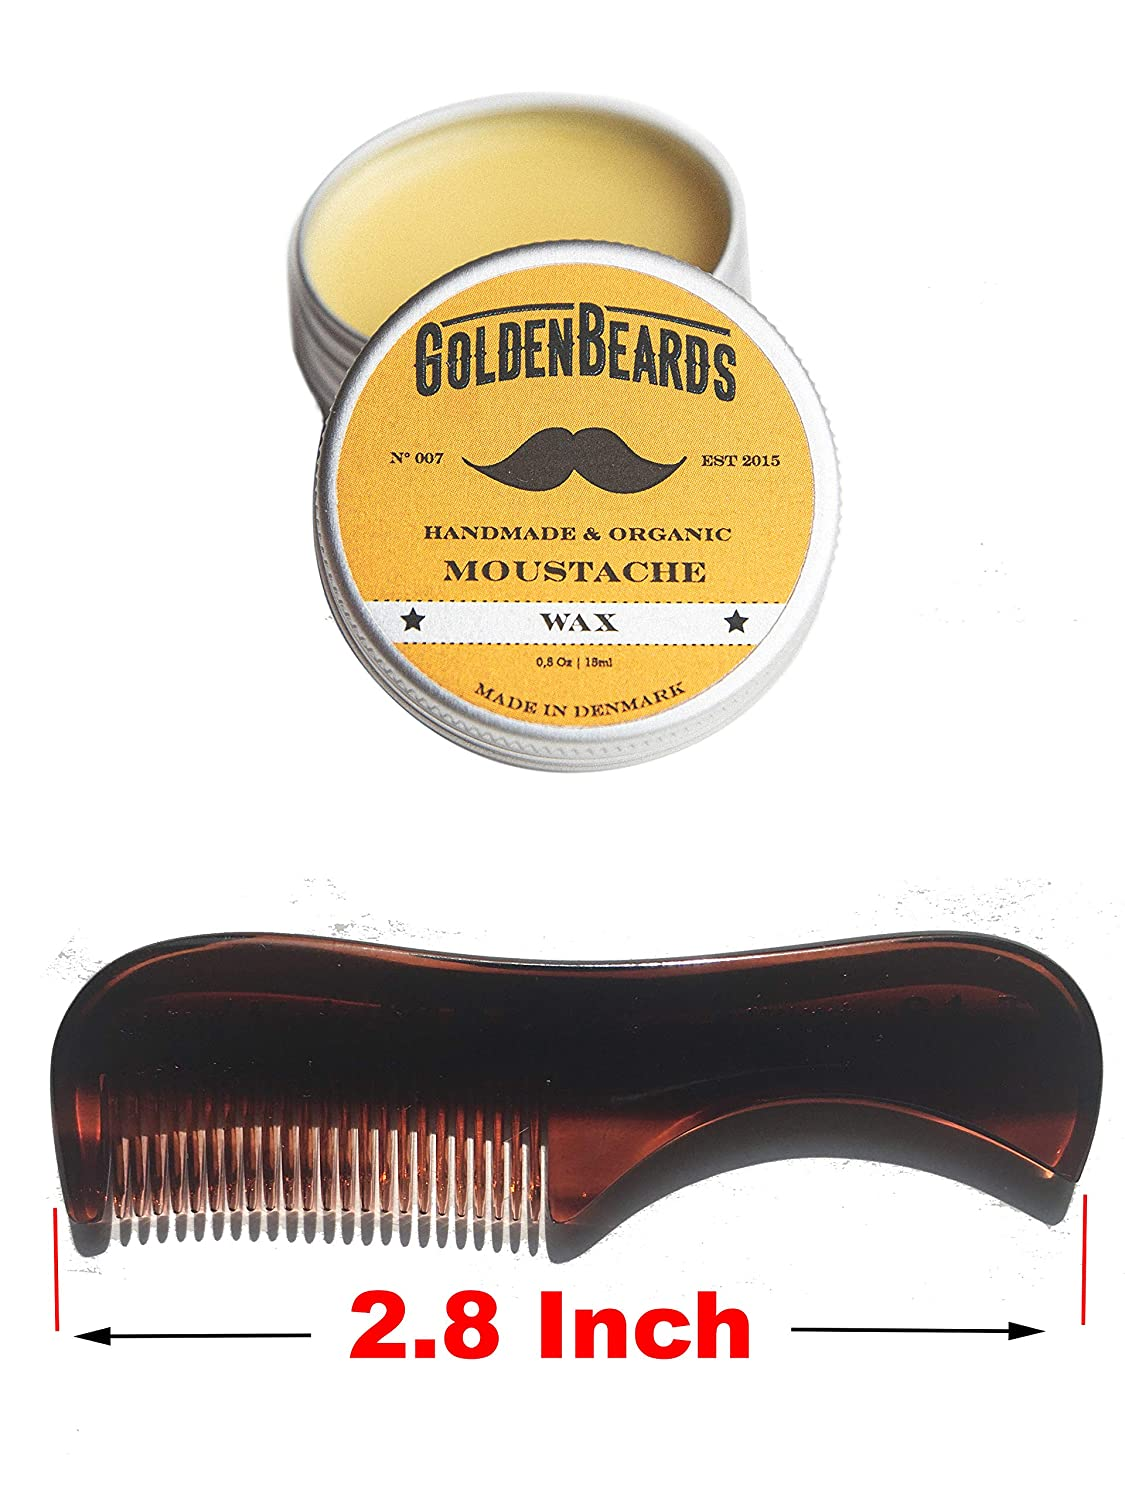 Moustache Wax & Small Comb Get the BEST Moustache Wax KIT with a 2.8 inch Comb at BEST Price, Save money ordering these two products! Golden Beards